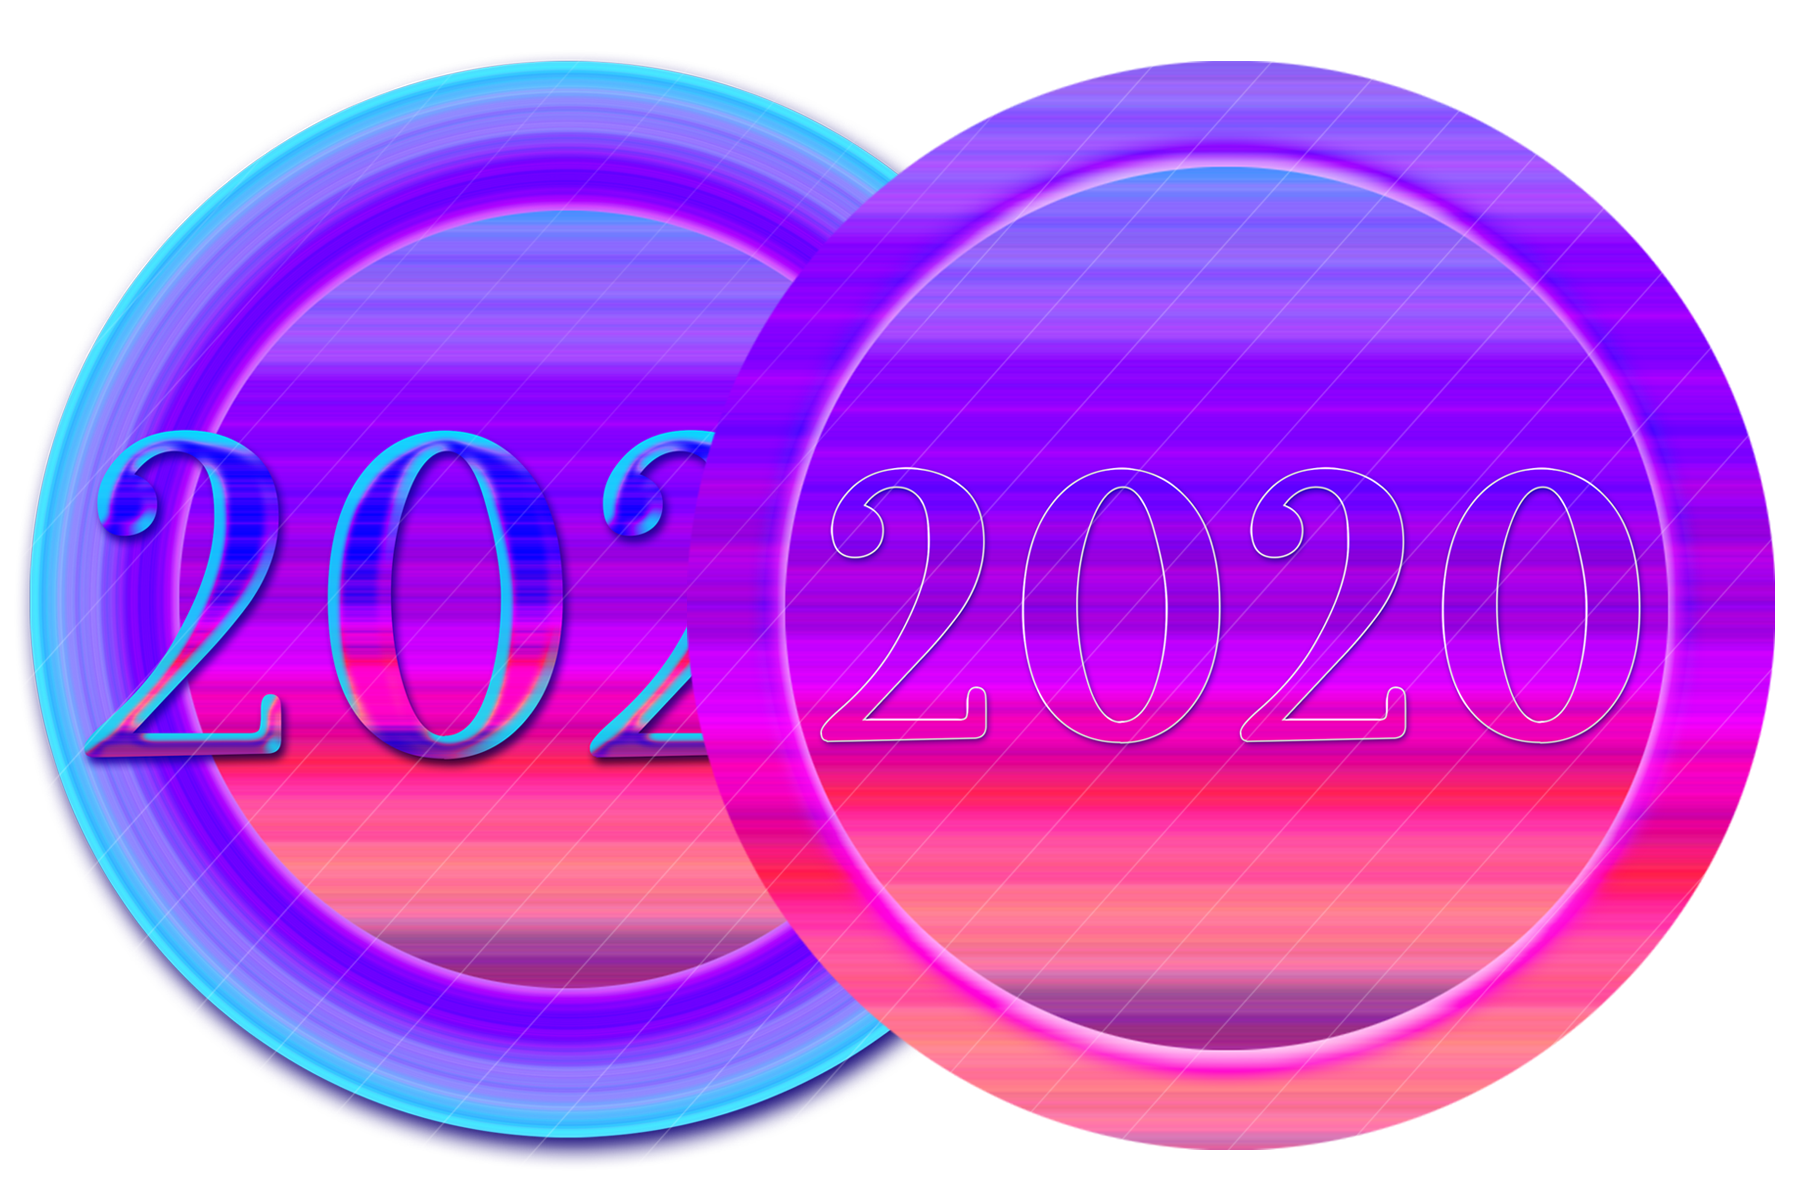 2020 New Year Designs for PRINTING, High Resolution example image 6